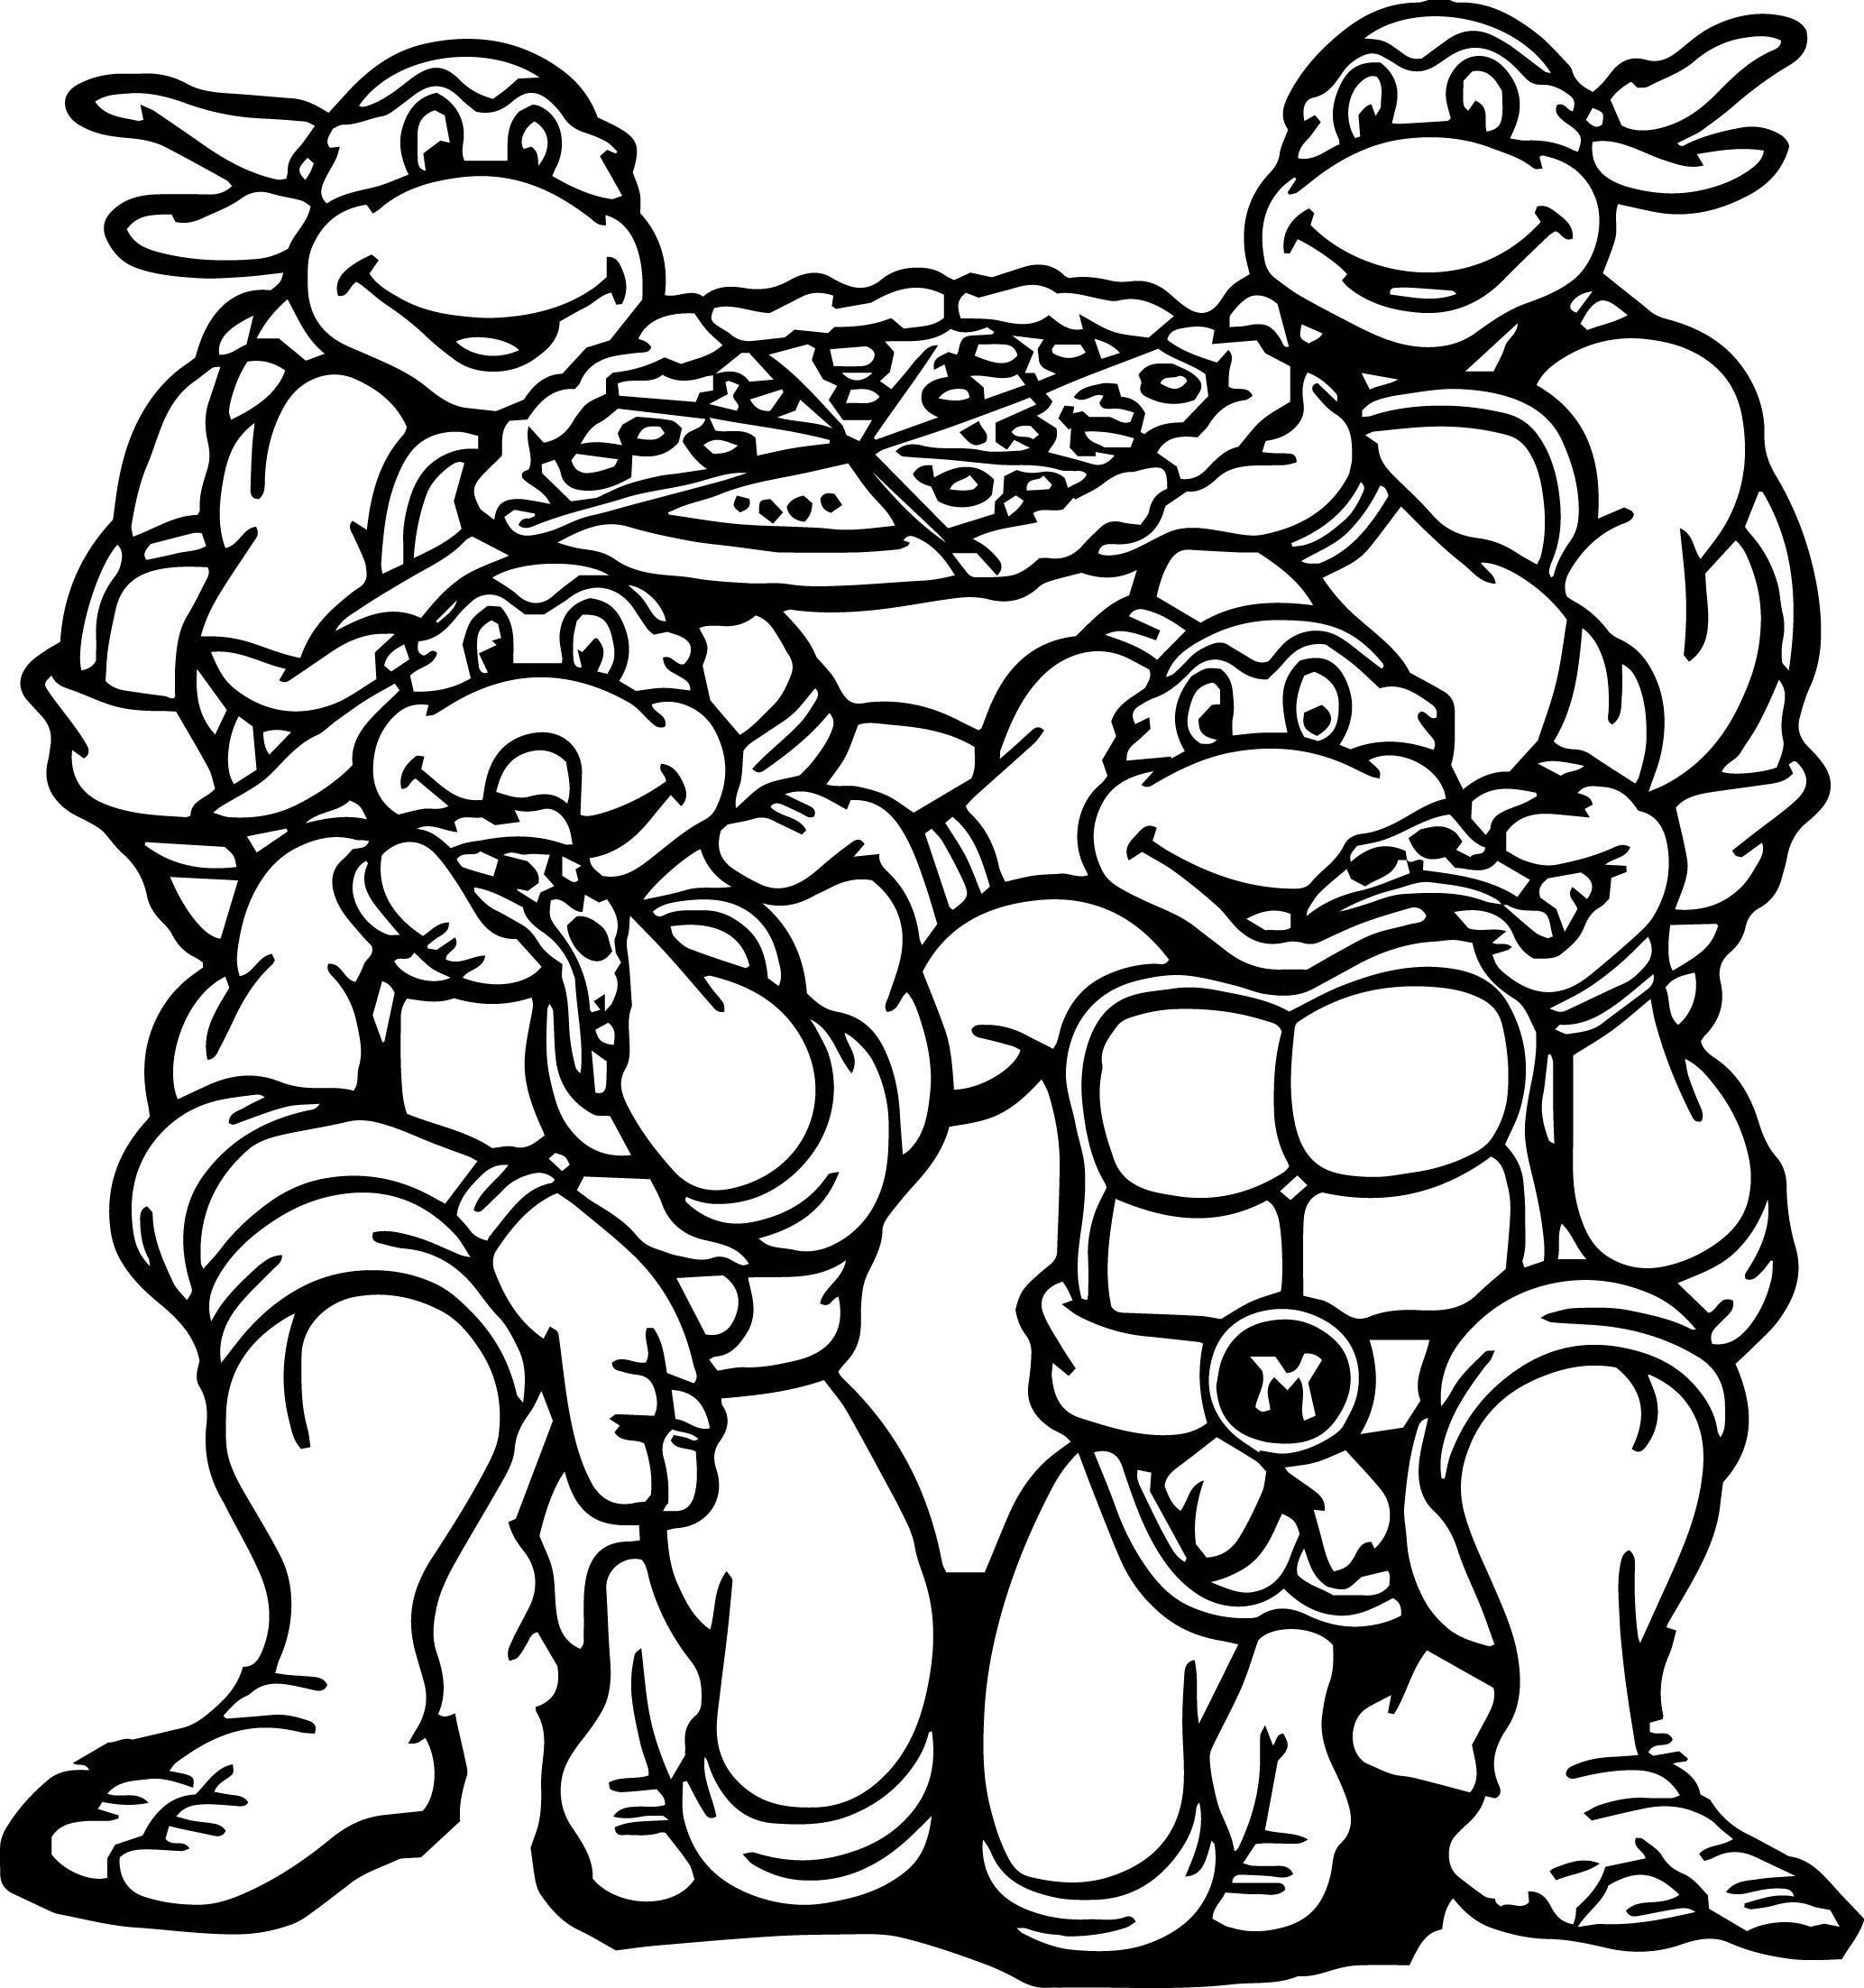 ninja turtle coloring teenage mutant ninja turtles coloring pages best coloring ninja turtle